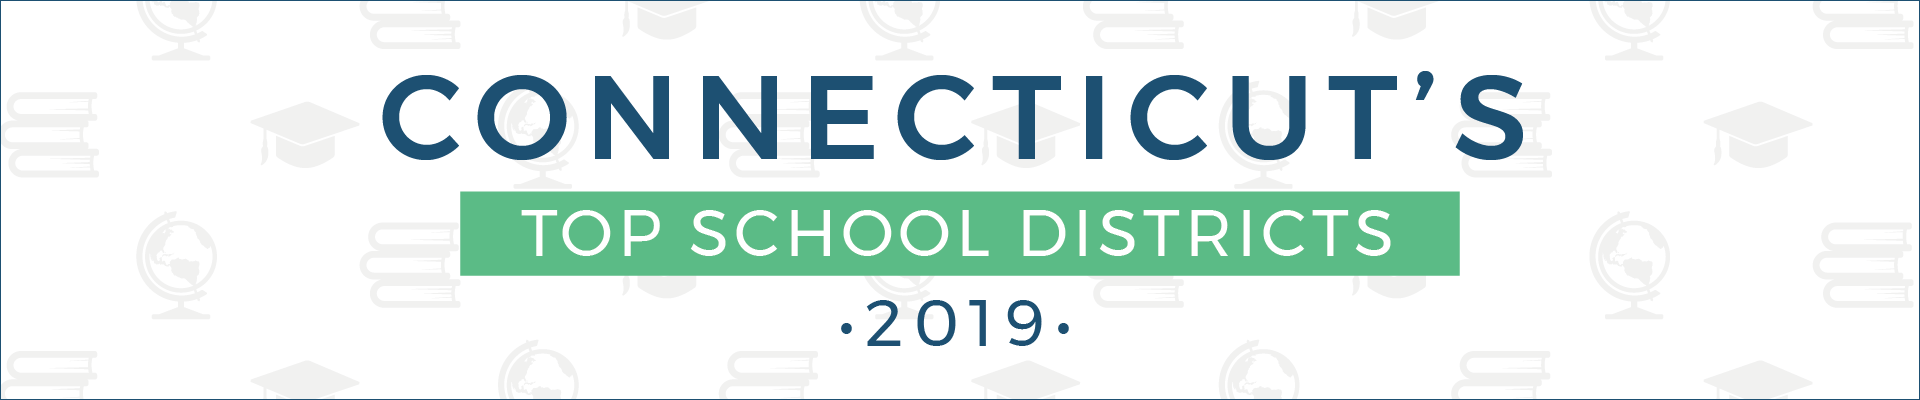 top school districts, 2019 - connecticut - banner